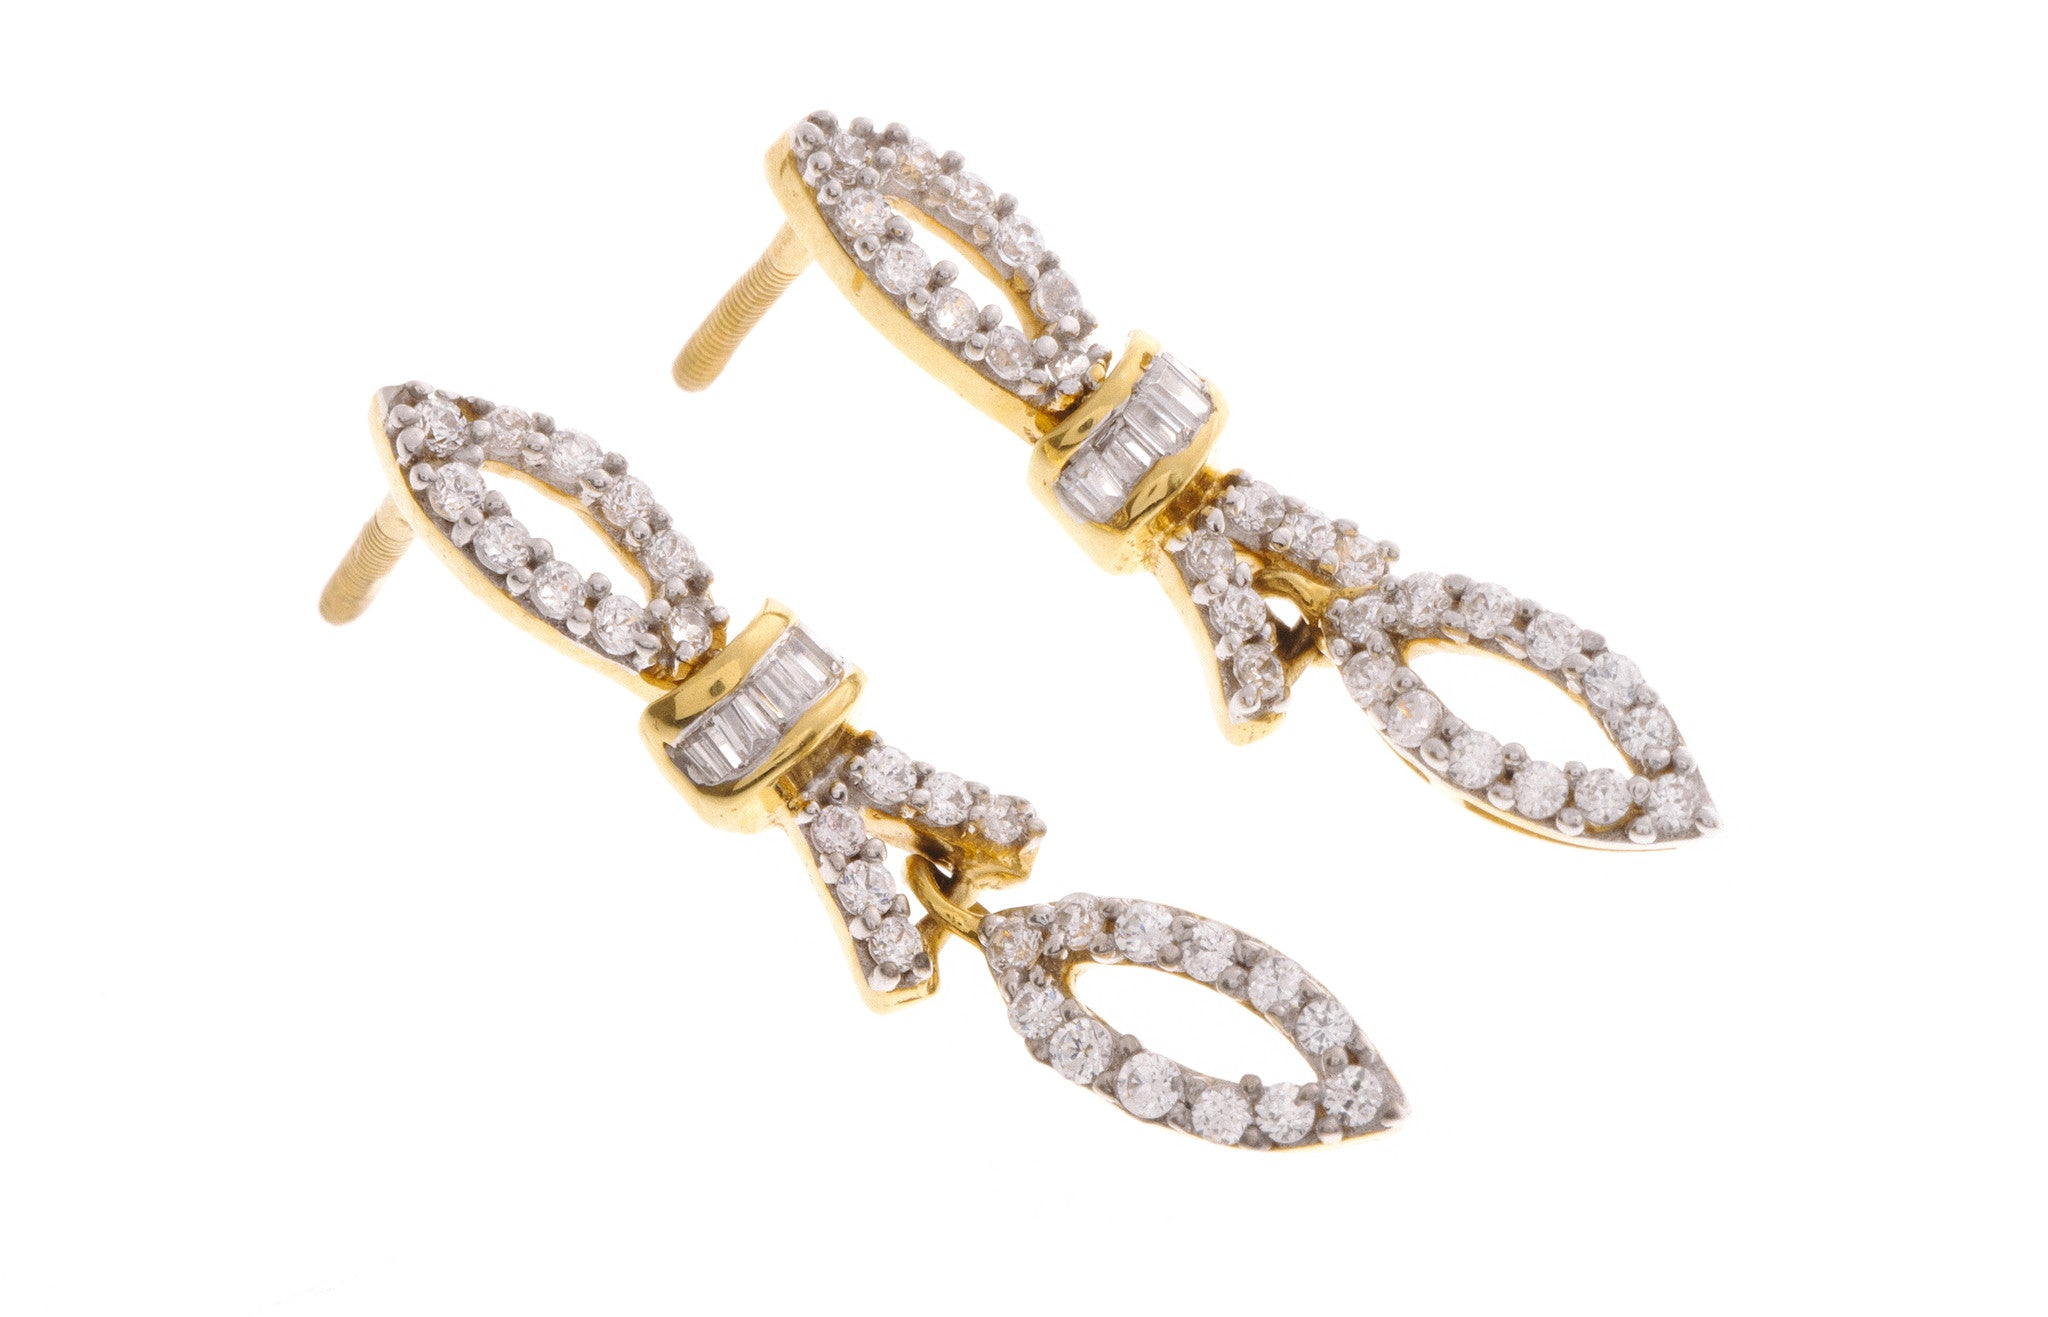 22ct Yellow Gold Cubic Zirconia Mangal Sutra & Earring Set, Minar Jewellers - 6